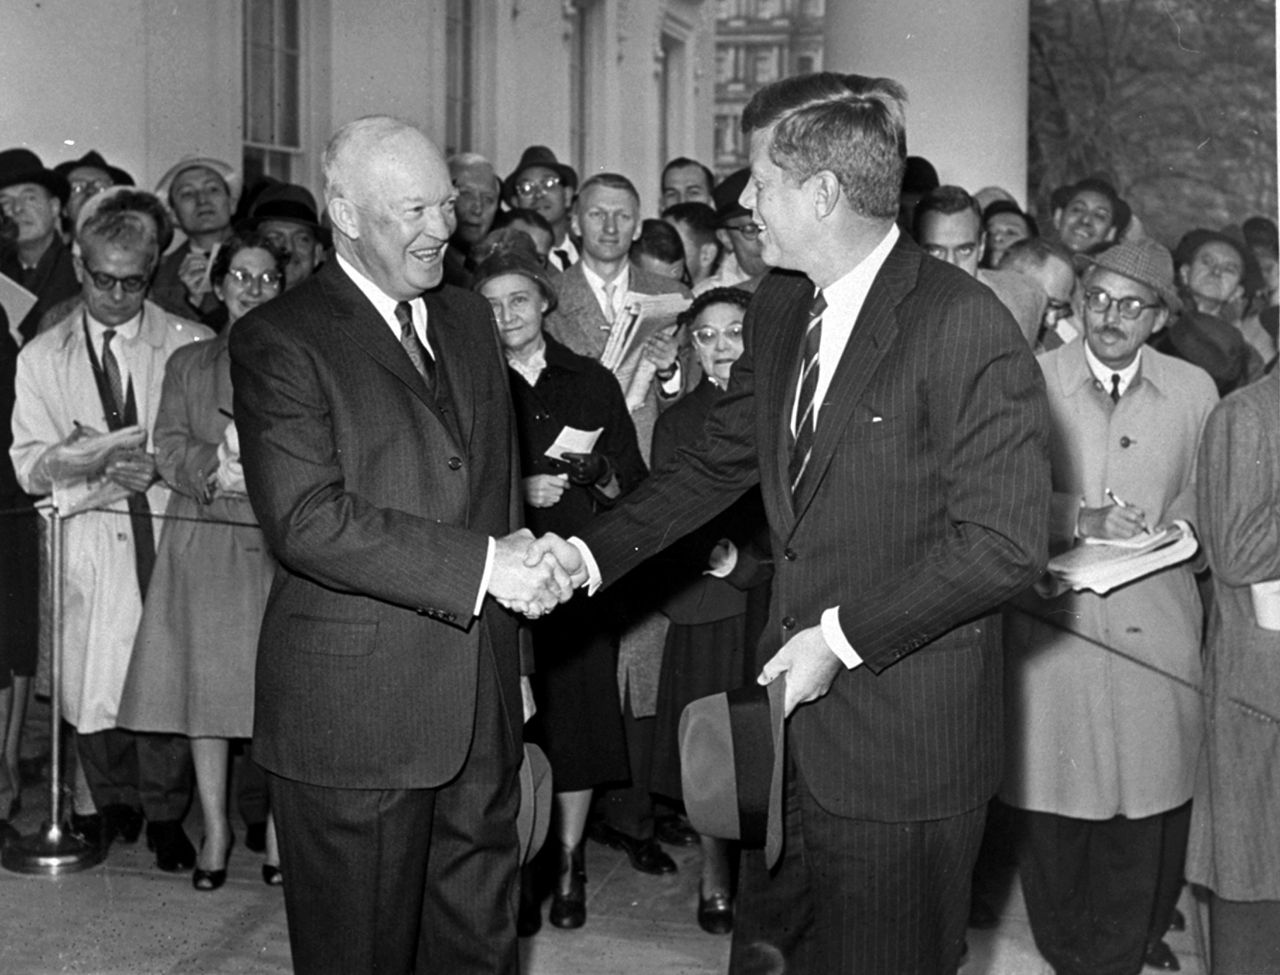 """President Eisenhower verwelkomt op 6 december 1960 de aanstaande president Kennedy op het Witte Huis. Foto AP ** FILE ** In this Dec. 6, 1960 file photo, President Eisenhower shakes hands with President-elect John F. Kennedy as he arrives at the White House in Washington. After the three-hour meeting, an aide later described Eisenhower as """"overwhelmed by Senator Kennedy, his understanding of the world problems, the depth of his questions, his grasp of the issues and the keenness of his mind."""" (AP Photo, File)"""